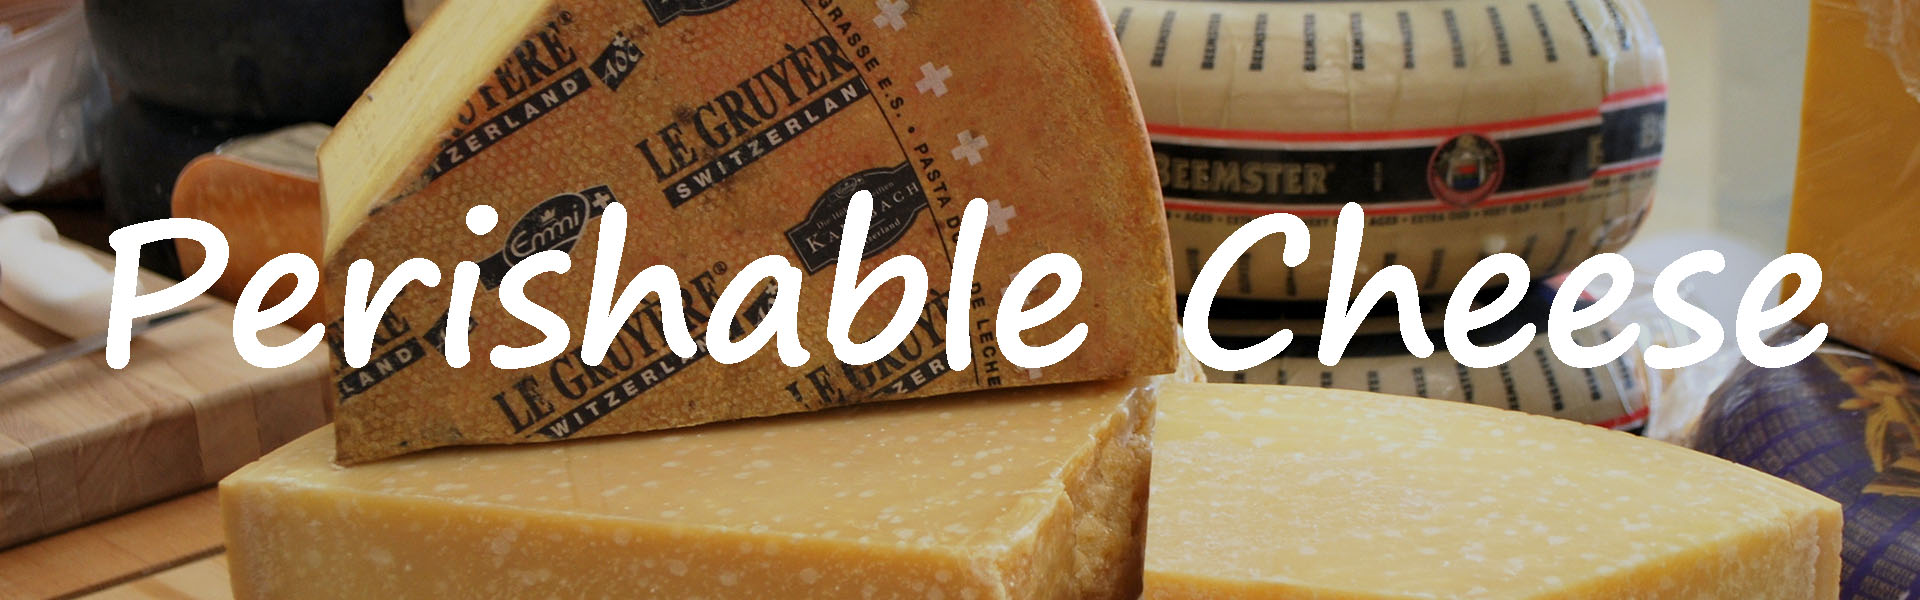 web-ready-perishable-cheese-3